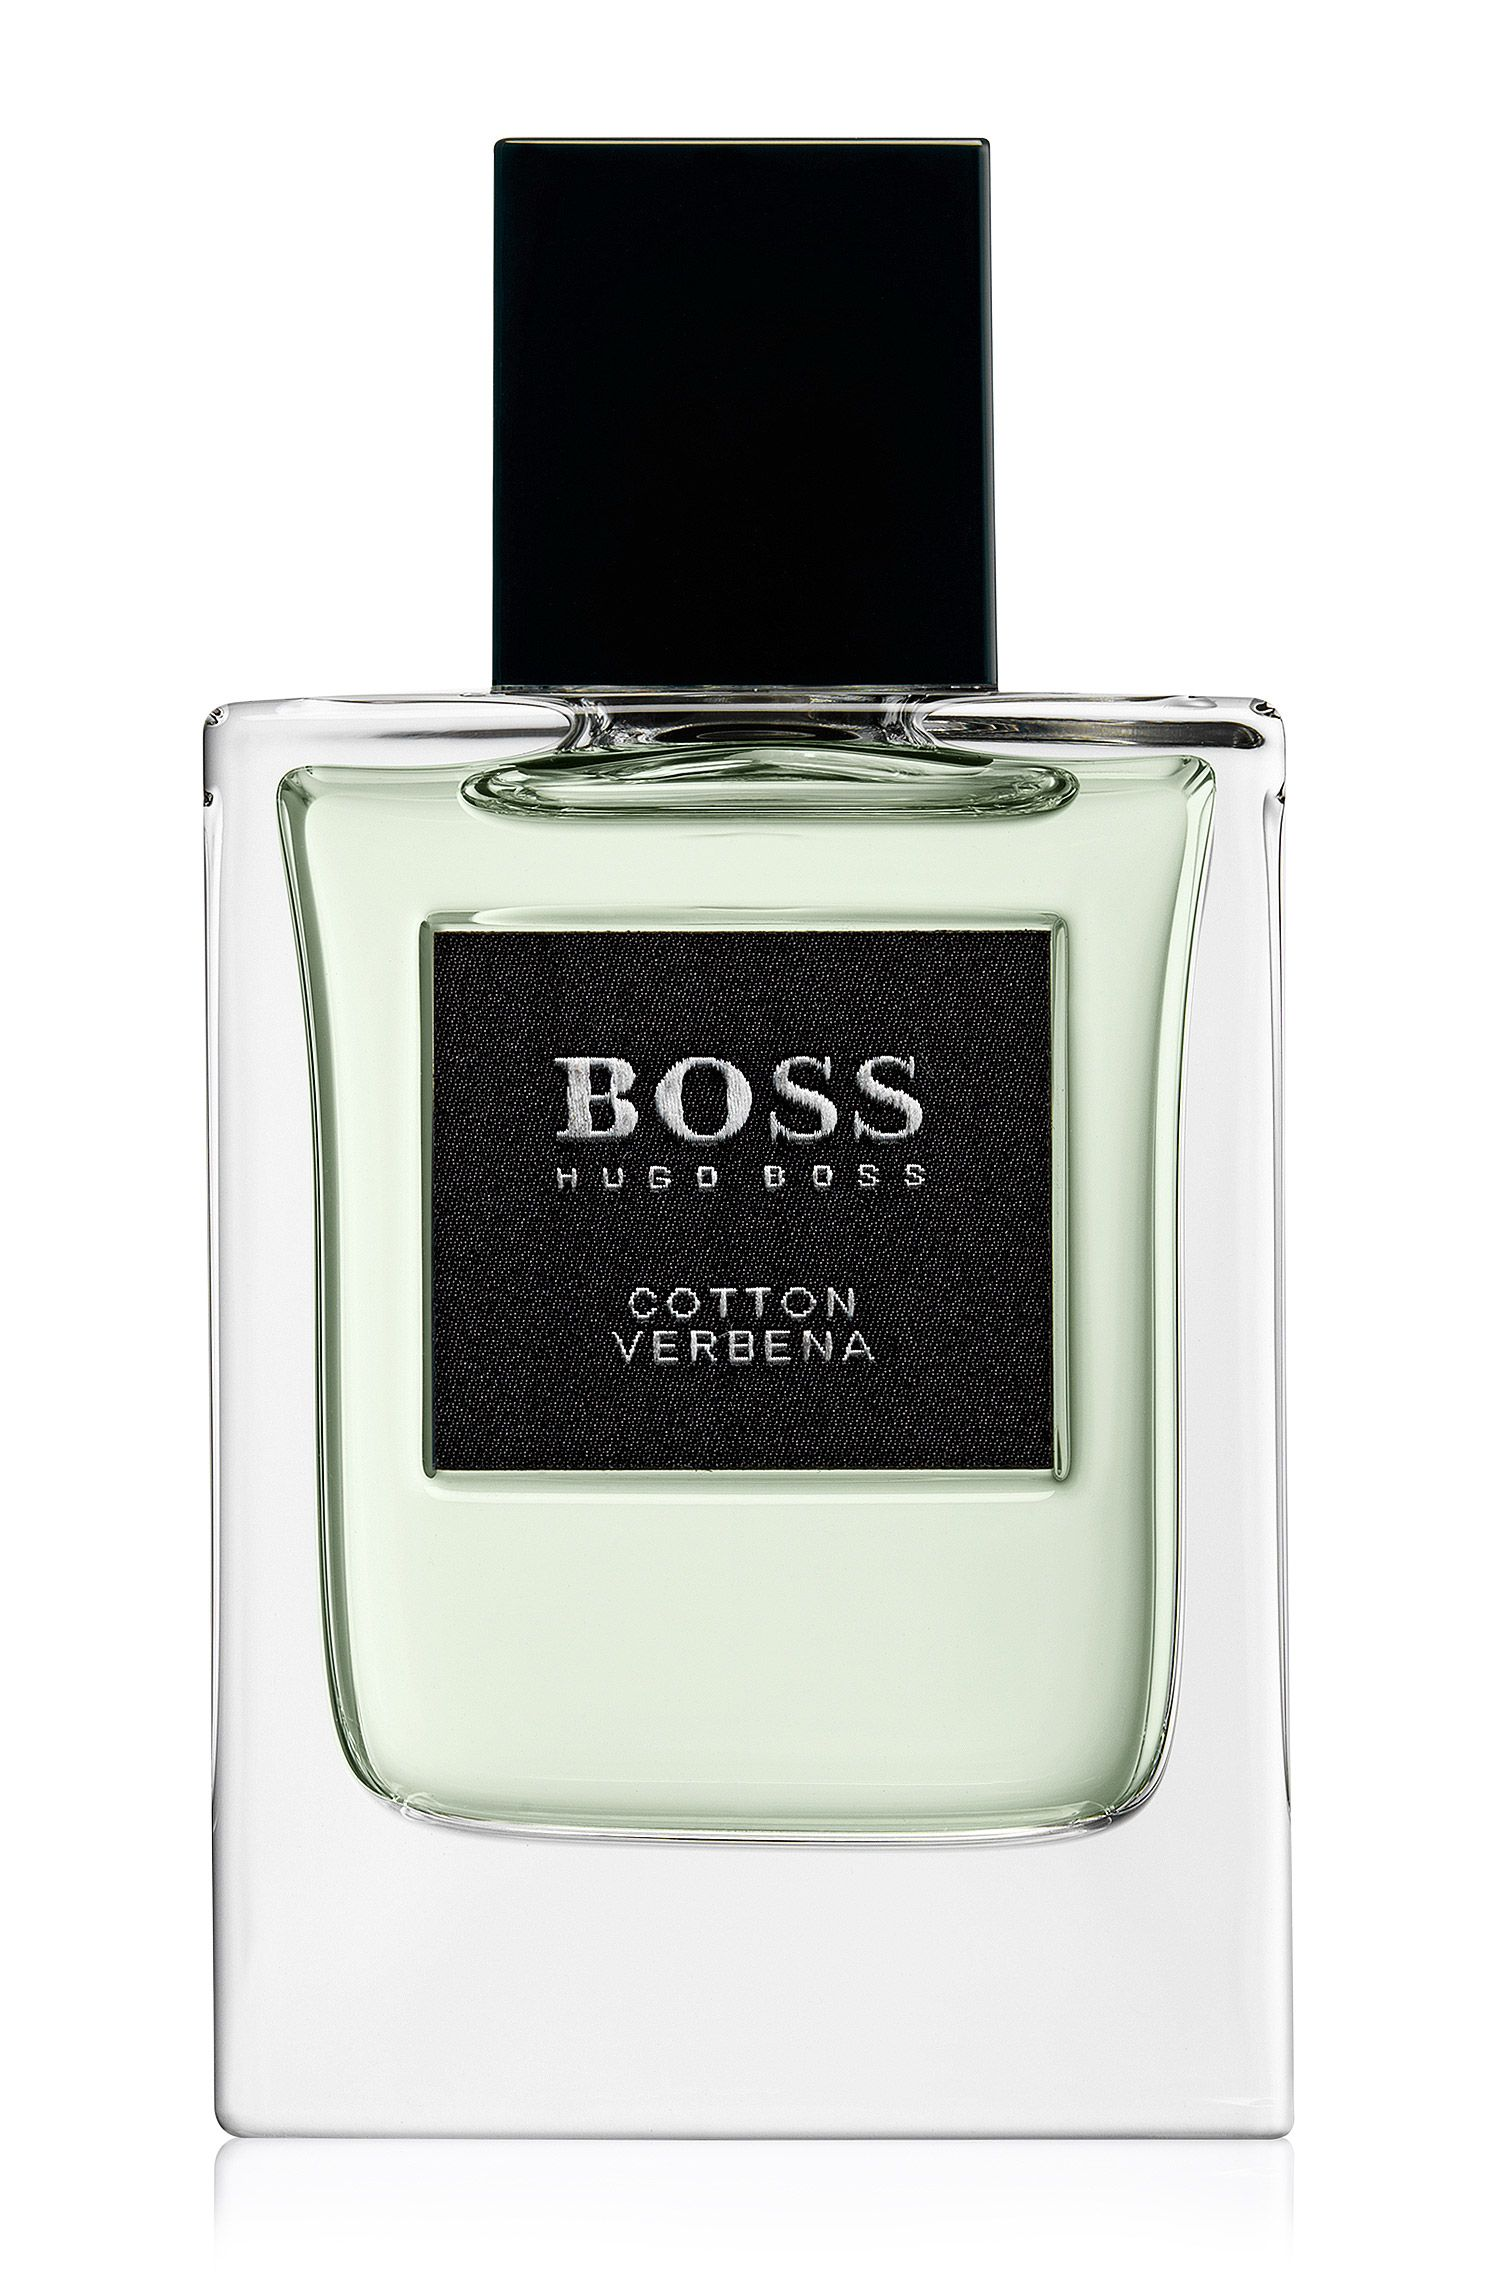 BOSS The Collection - Cotton Verbena Eau de Parfum